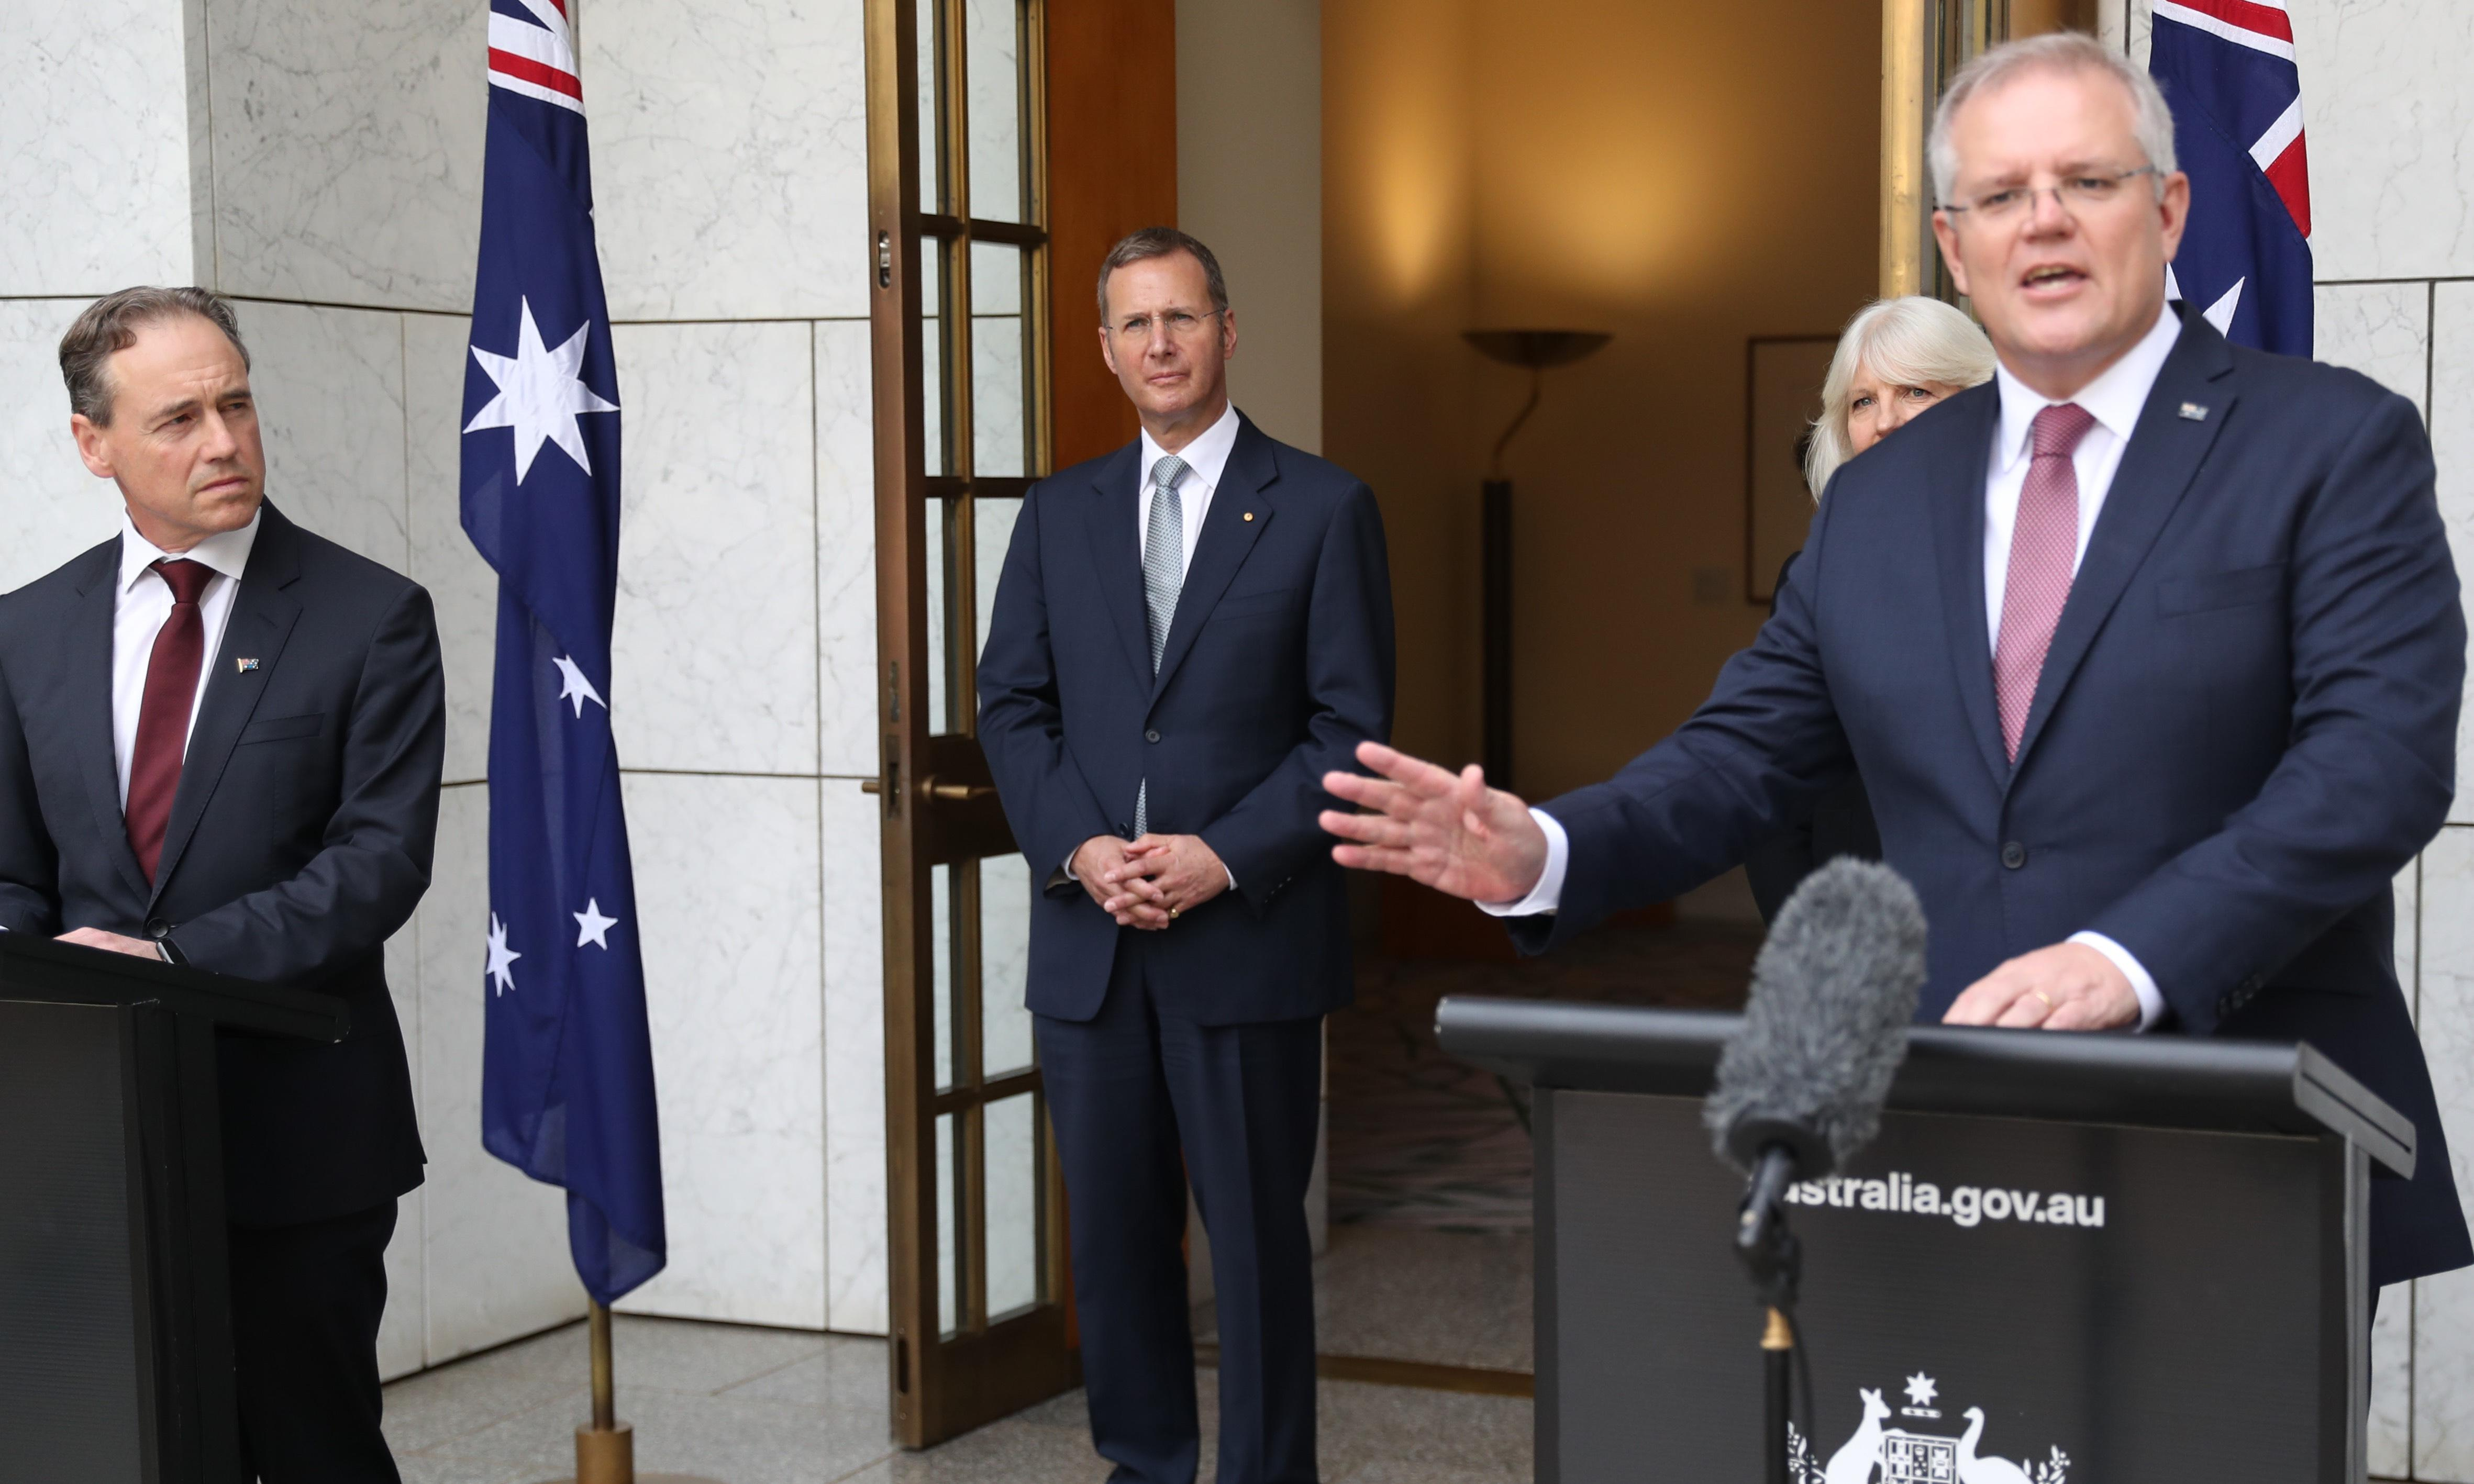 Scott Morrison offers coronavirus wage guarantee for those who have lost jobs, but details still to come